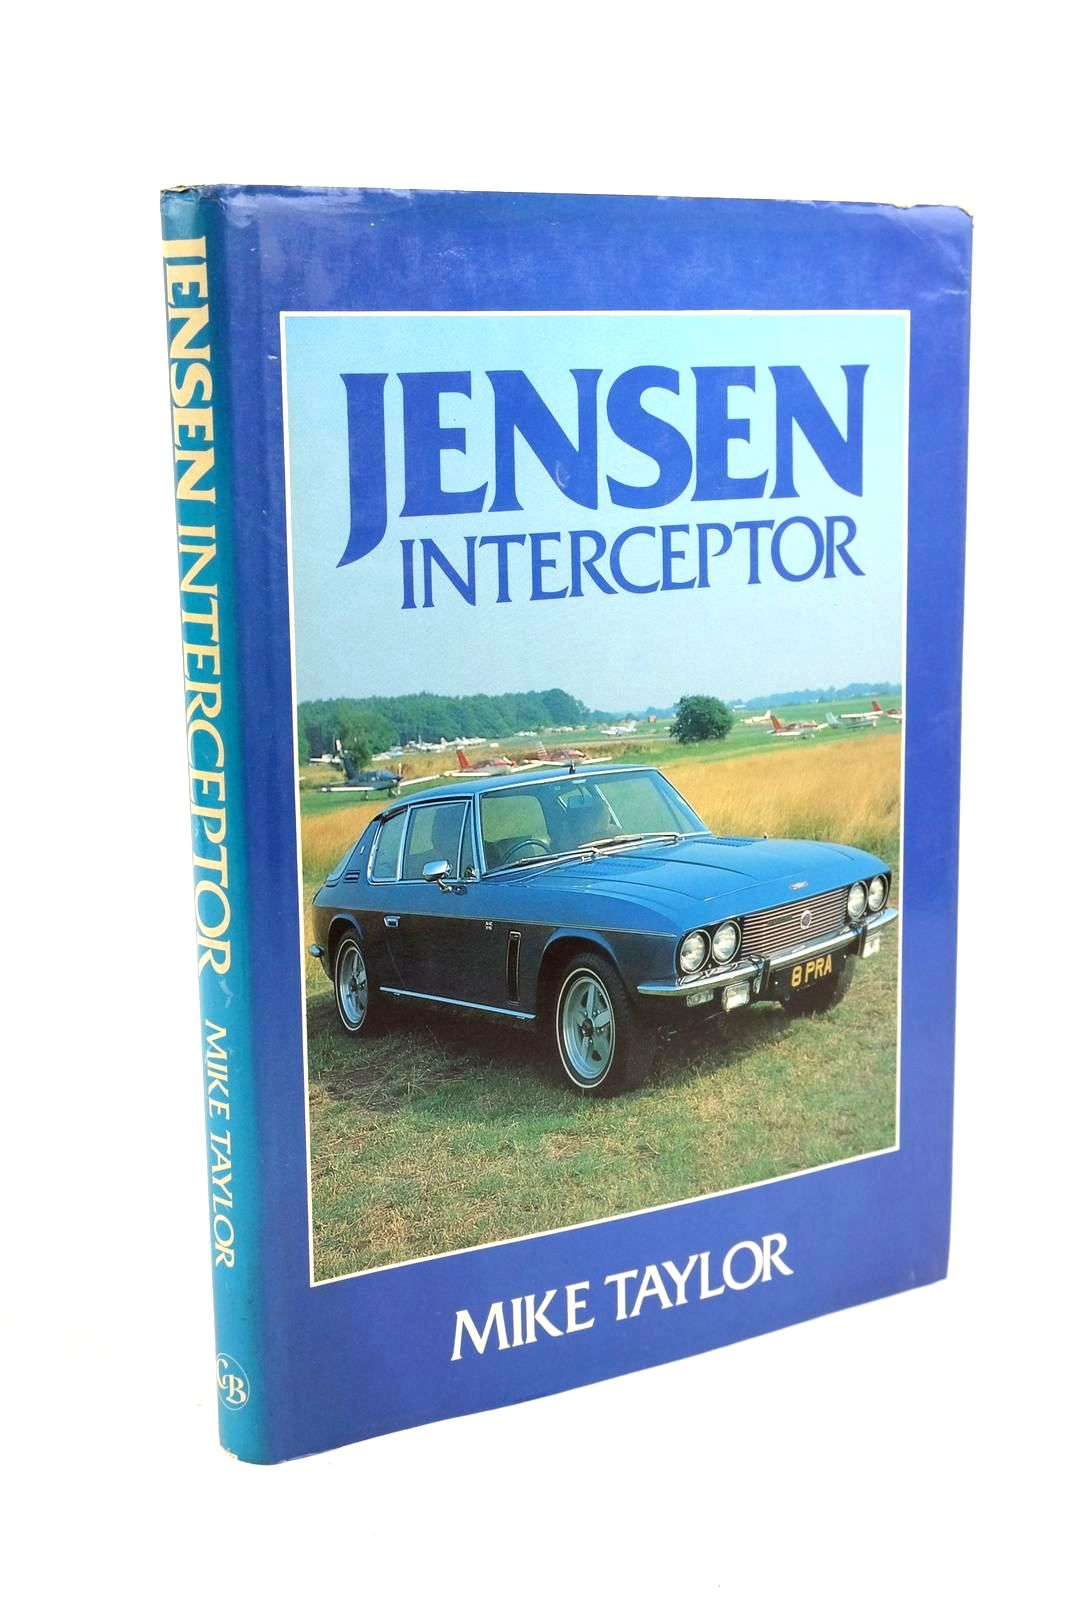 Photo of JENSEN INTERCEPTOR written by Taylor, Mike published by Cadogan Books (STOCK CODE: 1321499)  for sale by Stella & Rose's Books